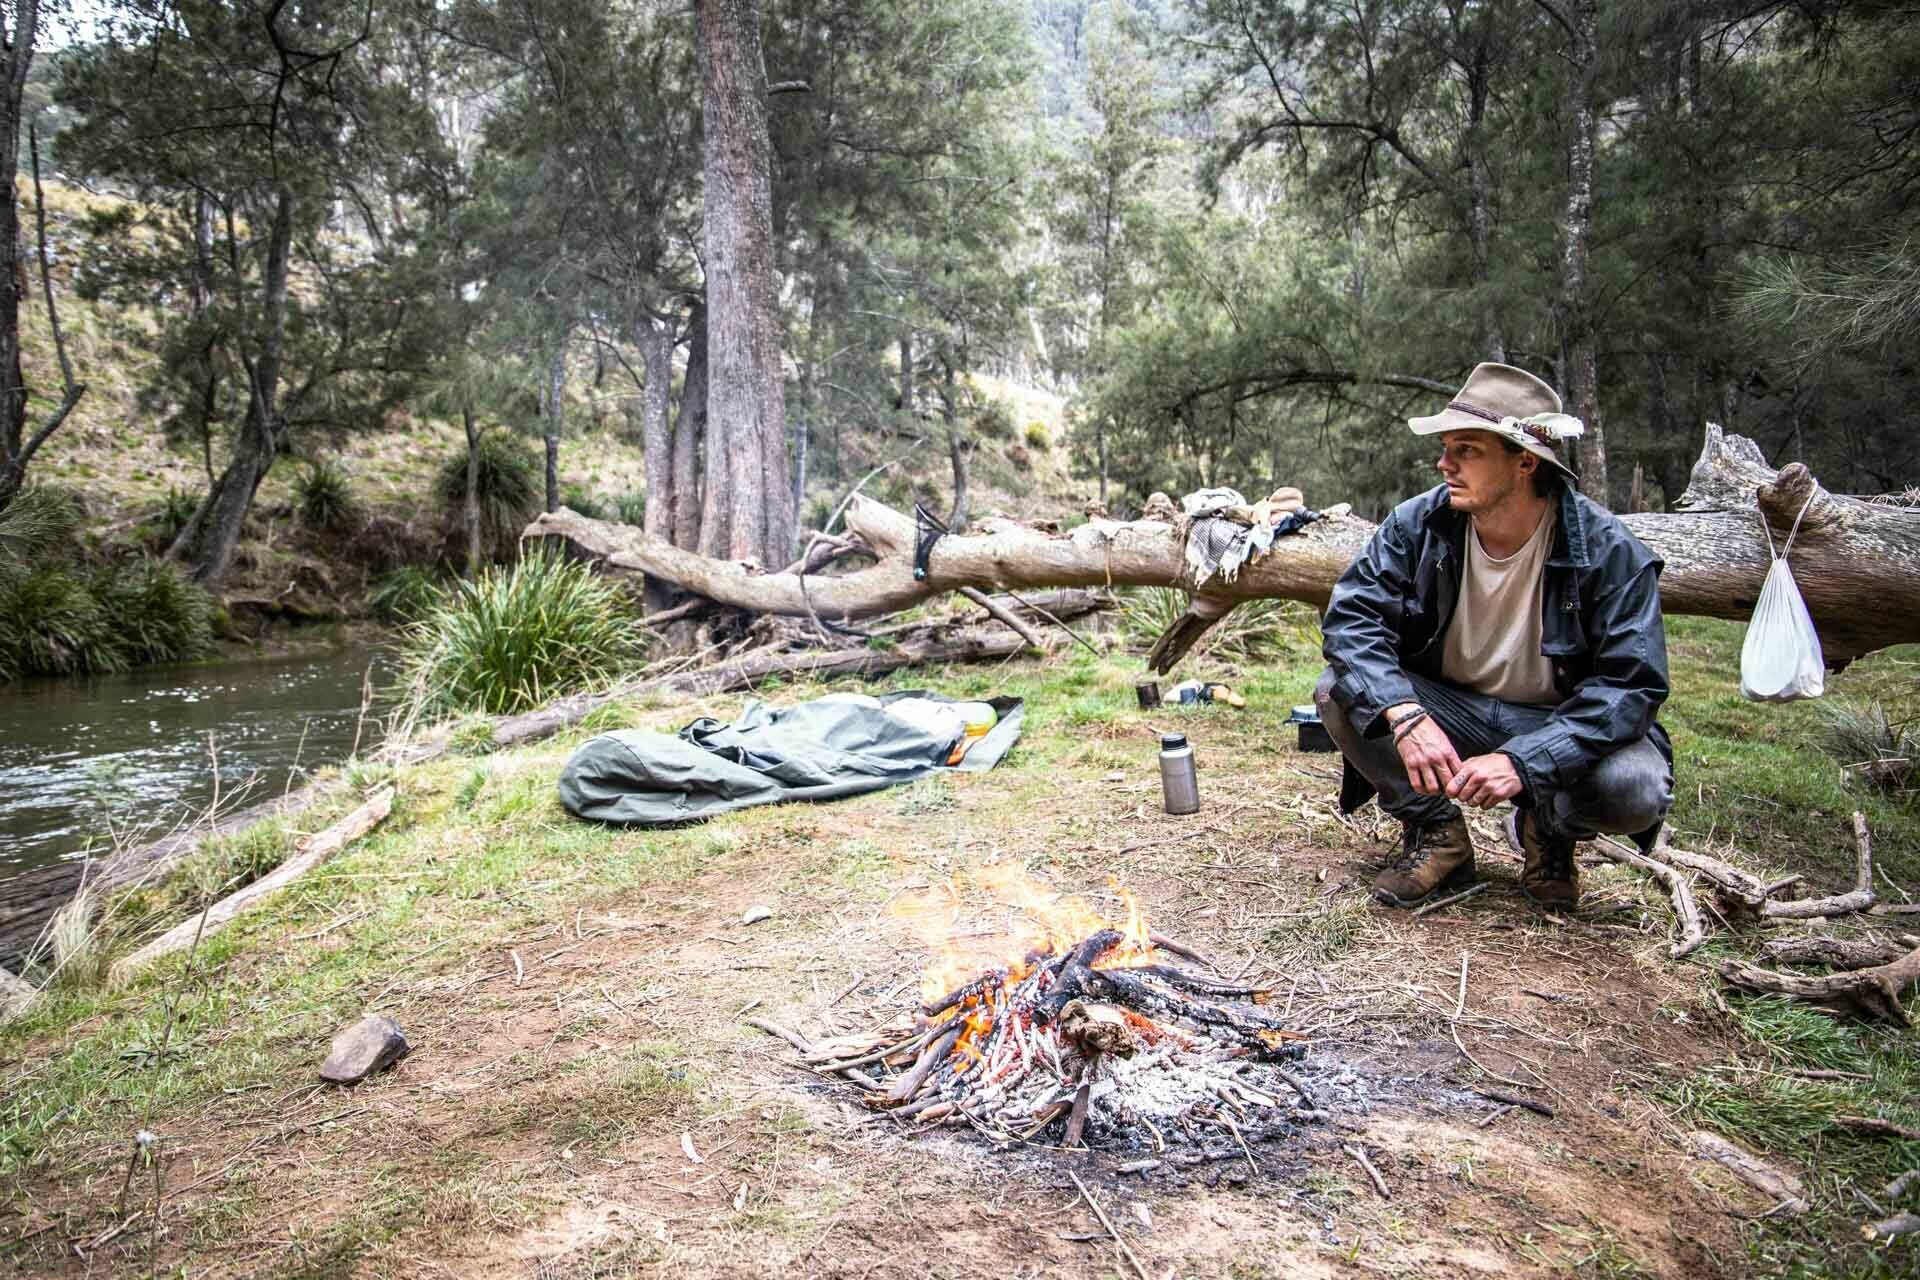 Hiking With A Swag? Scotty's Gone Walkabouts and Given It A Crack, scotty williams, scotty's gone walkabouts, swag, camping, hiking, blue mountains, nsw, traditional, bushcraft, fire